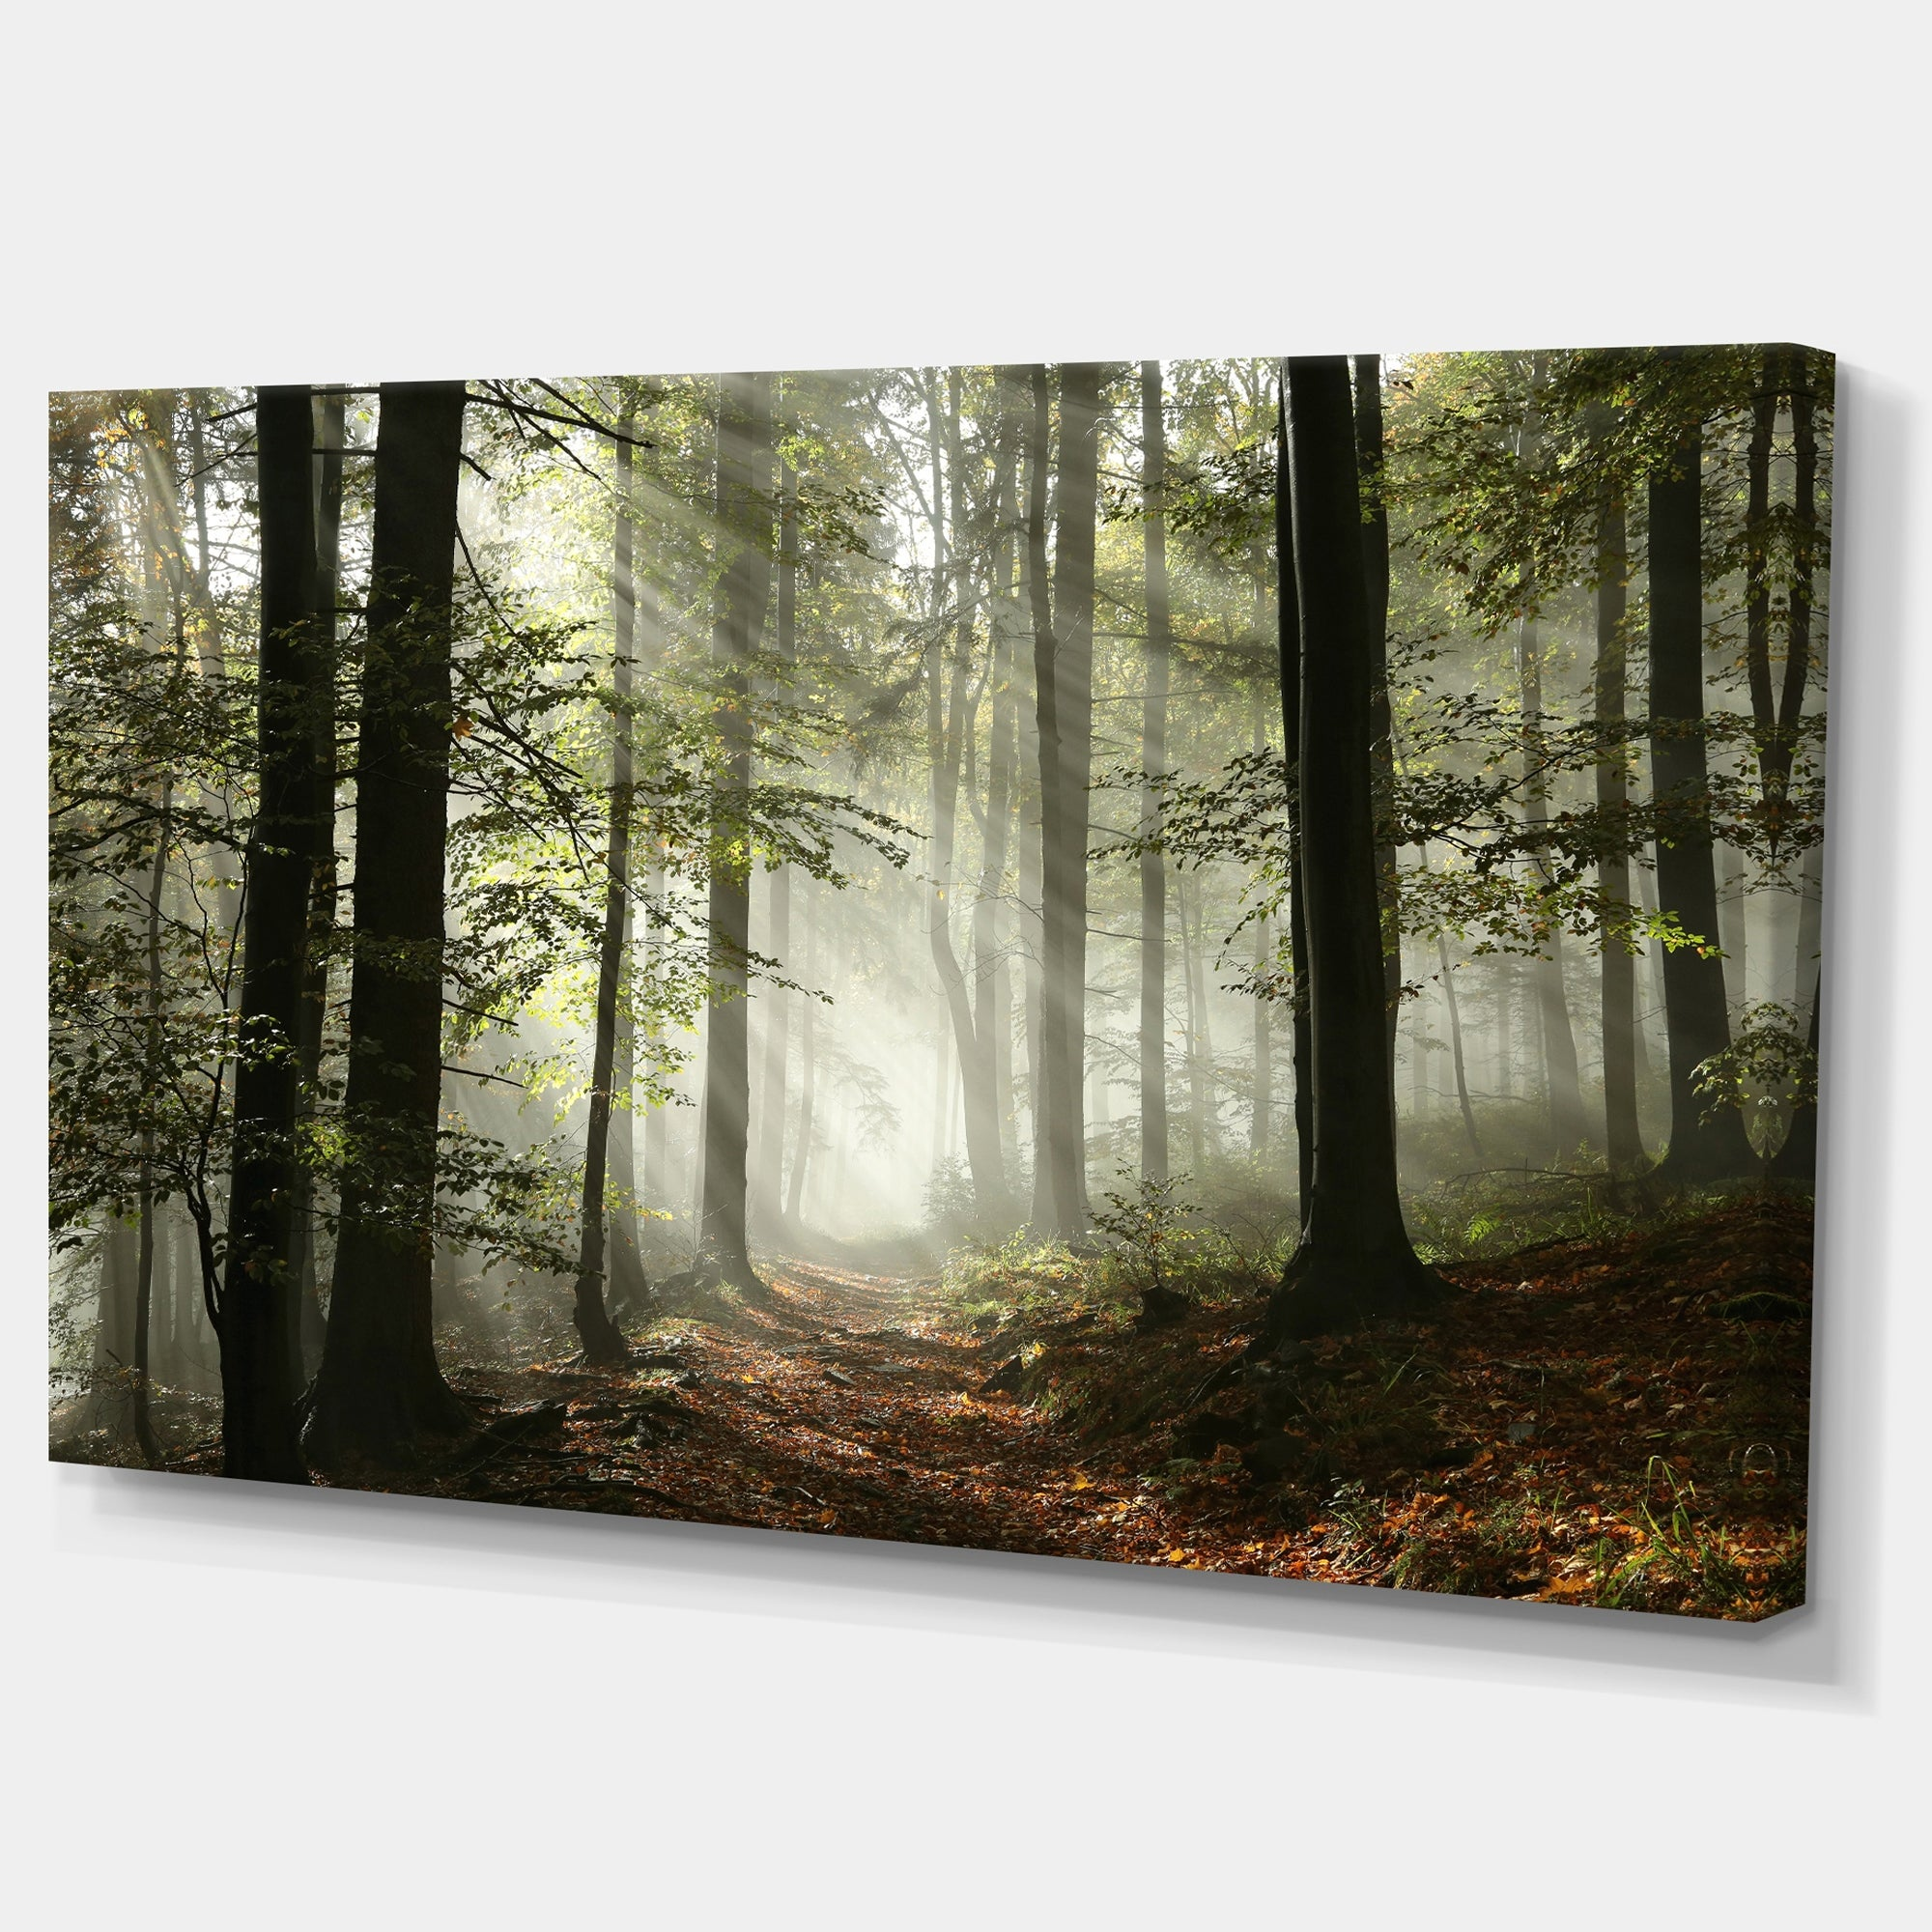 Designart Light In Dense Fall Forest With Fog Landscape Canvas Art Print On Sale Overstock 12101979